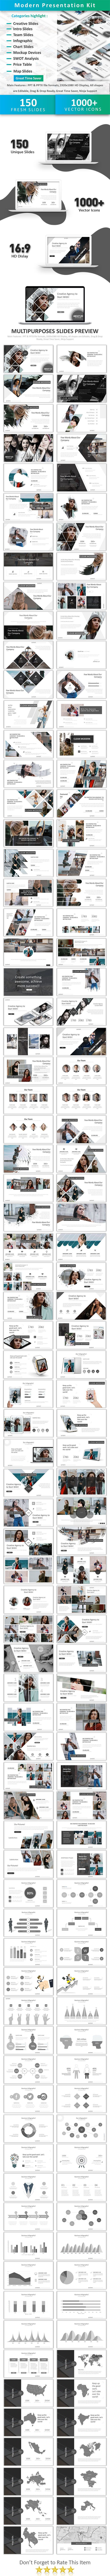 Modern Marketing Powerpoint Template - 150 Slides | PowerPoint ...